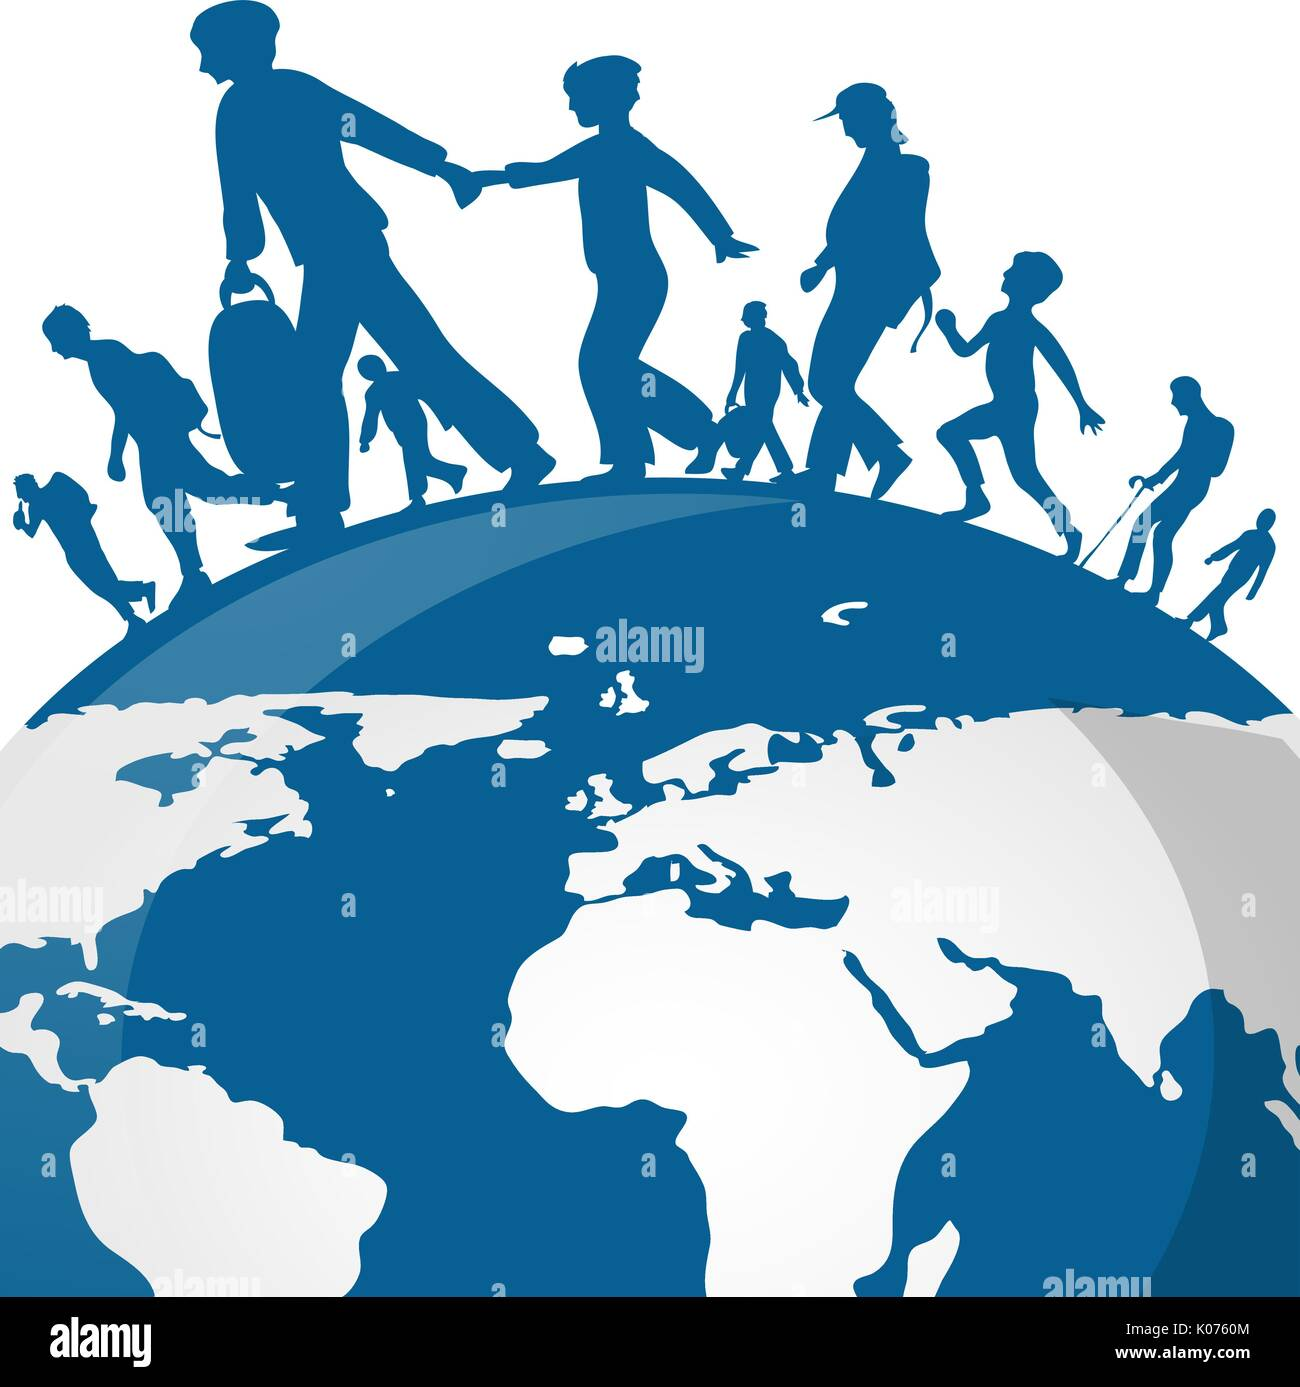 Immigration People On World Map Background Stock Vector